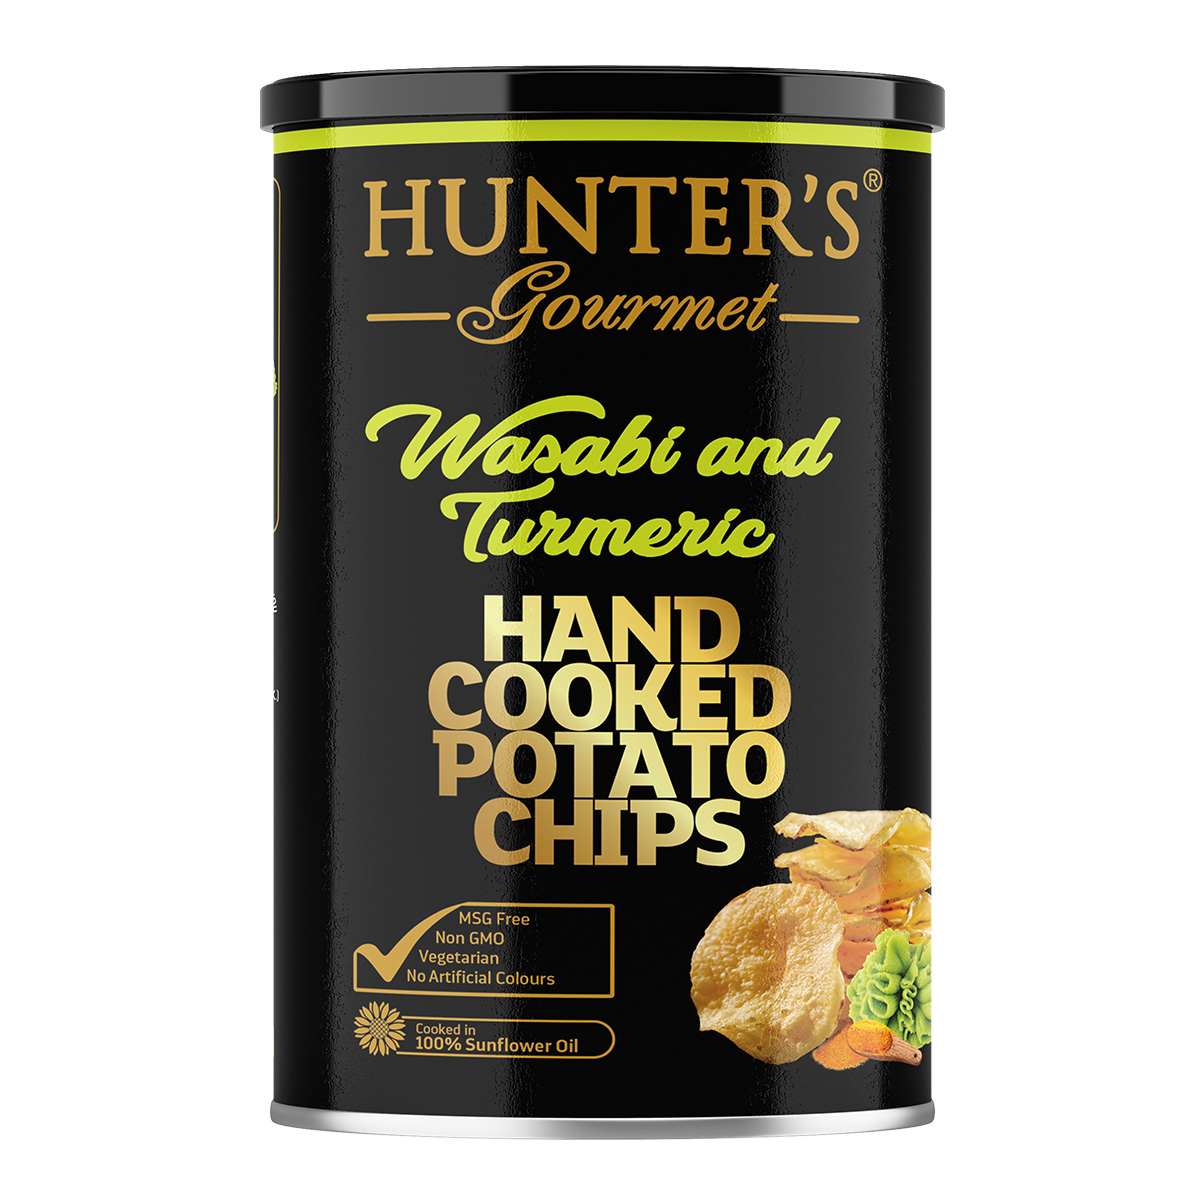 Hunter's Gourmet Hand Cooked Potato Chips – Wasabi And Turmeric – Gold Edition (150gm)